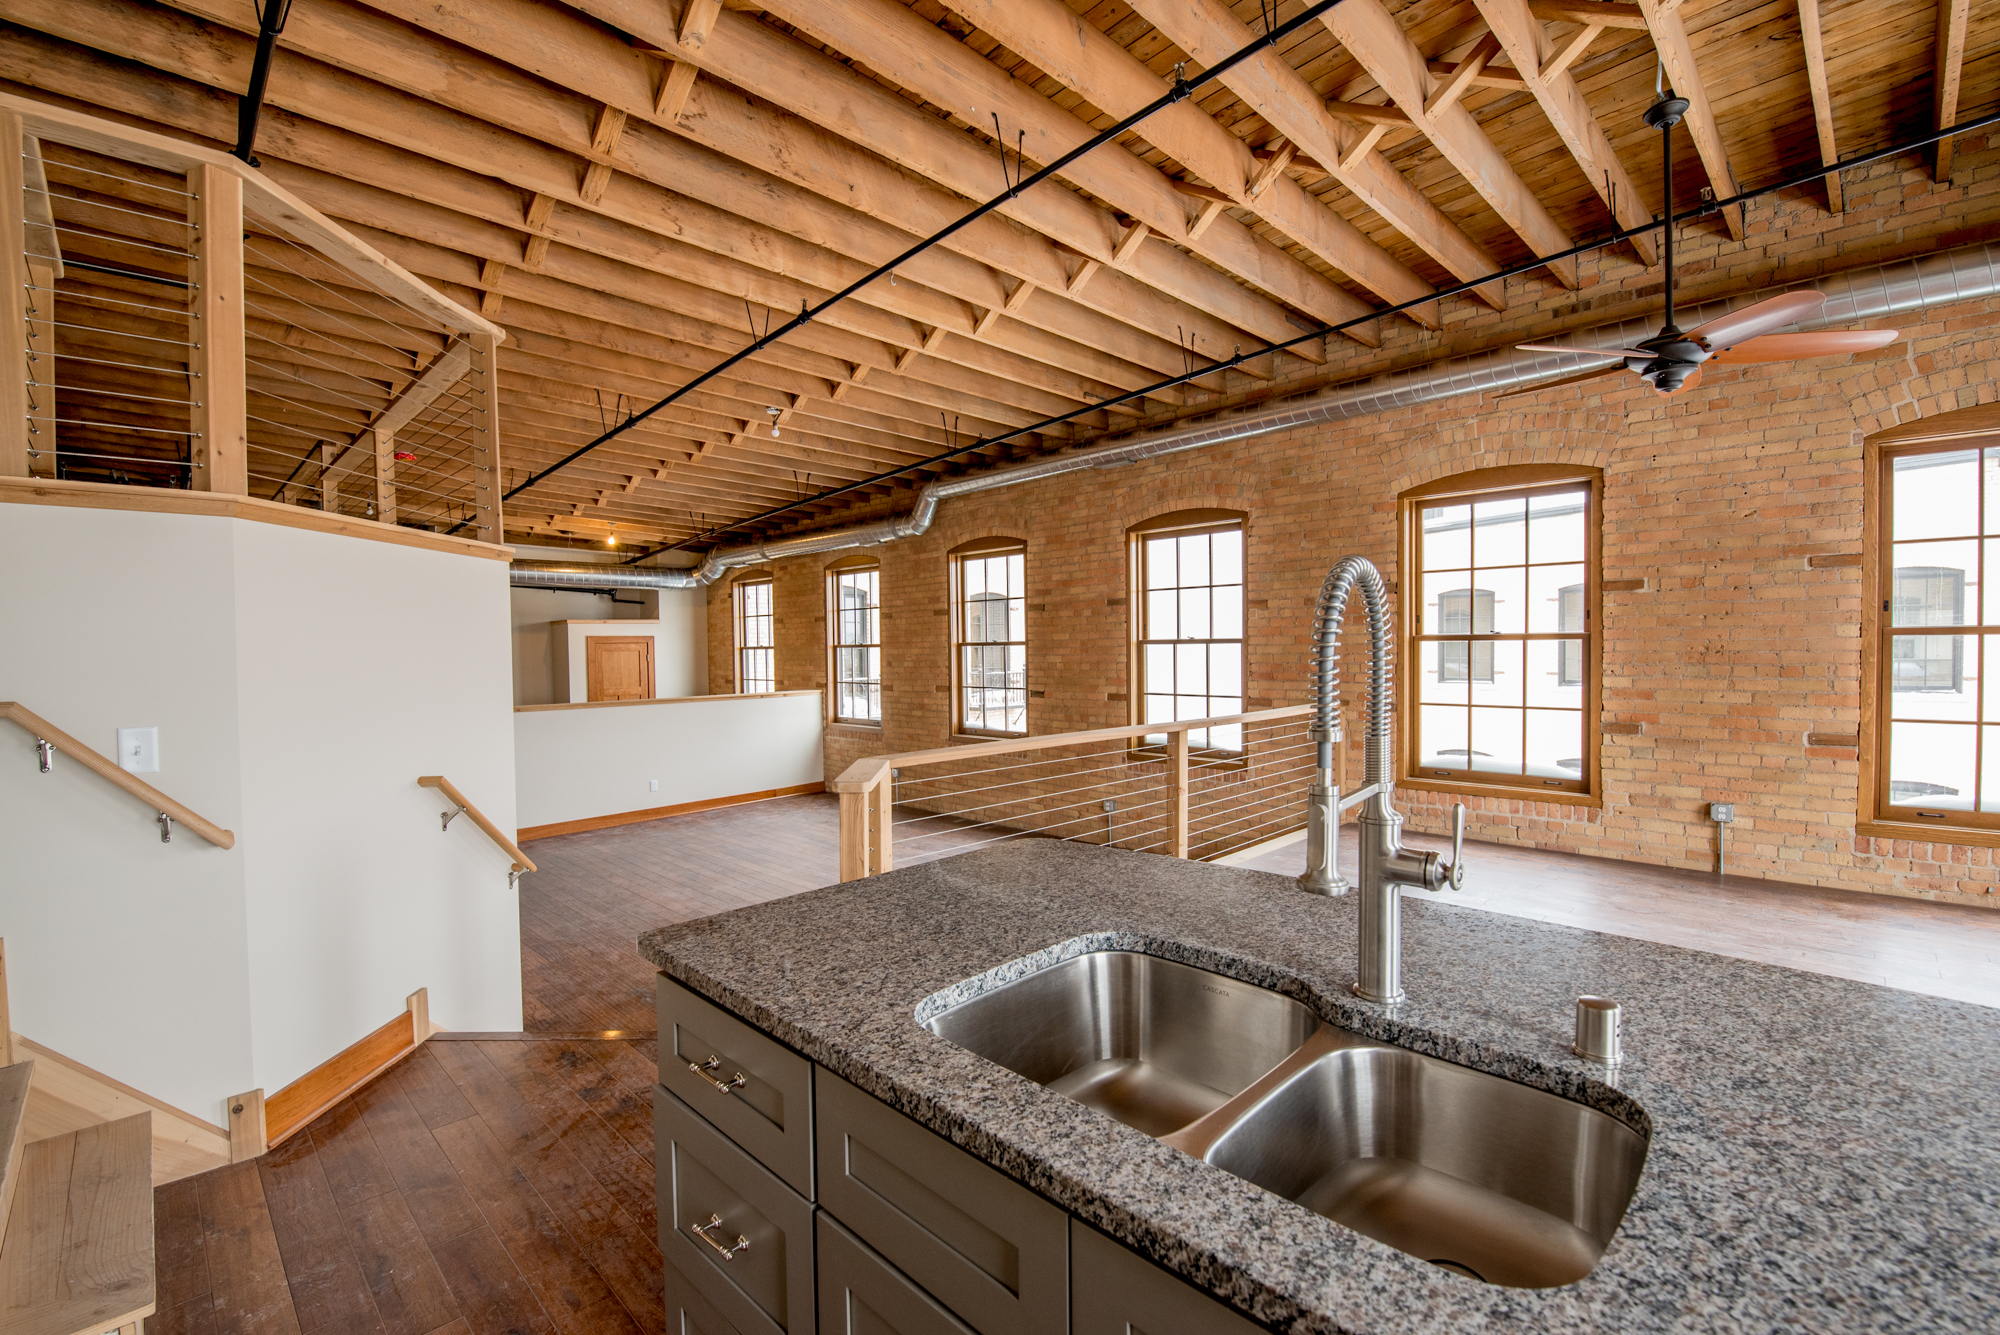 Each apartment has its own, unique floor plan to maximize the space within each apartment. Design elements include exposed brick and timber construction, oversized windows and plenty of preserved history. CLICK PHOTO FOR MORE